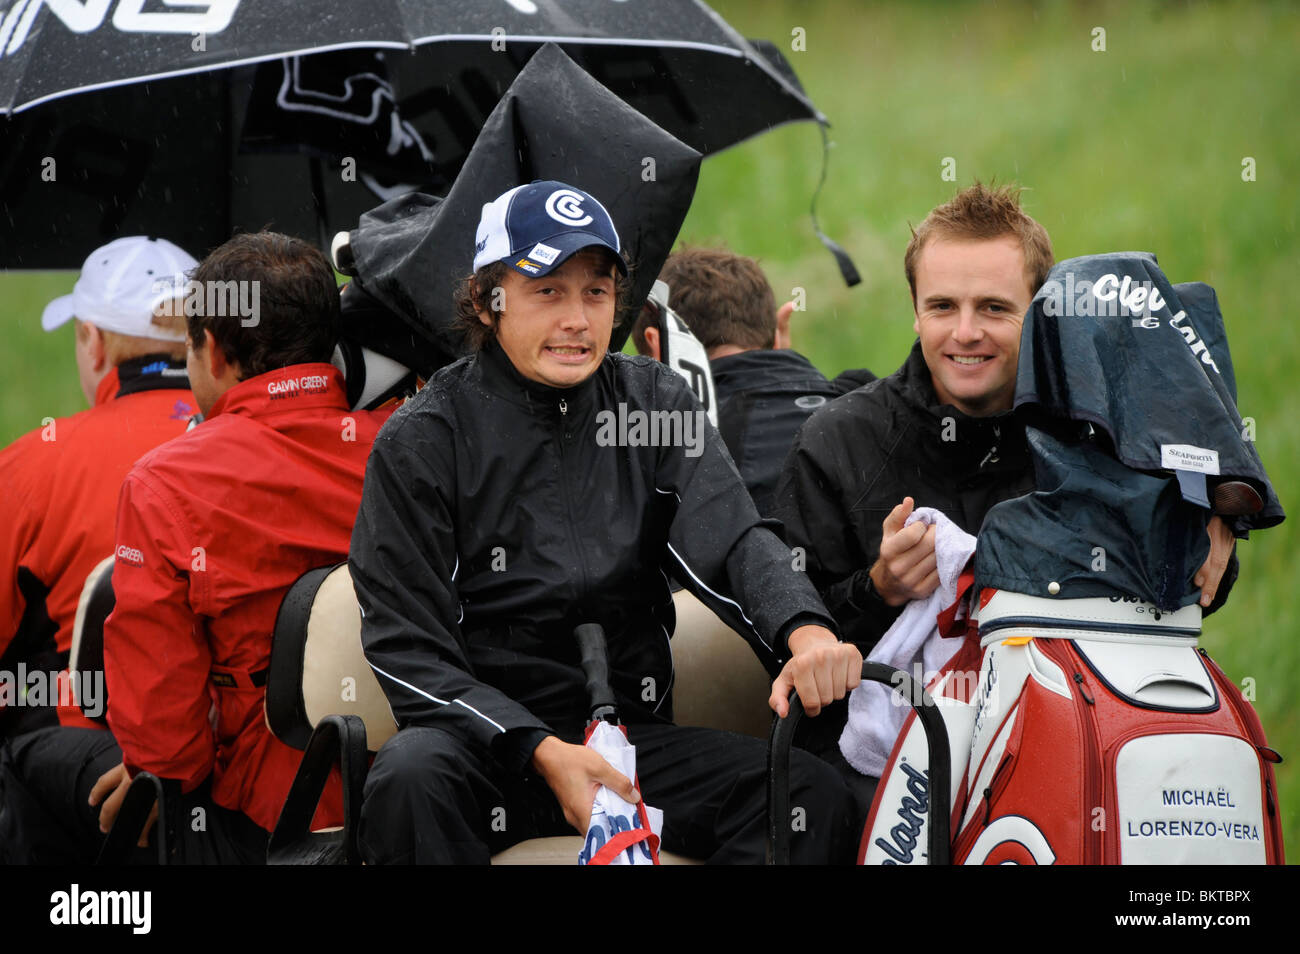 The french golfer Michael Lorenzo-Vera grimaces in the welsh rain during a buggy ride back from the practice range - Stock Image